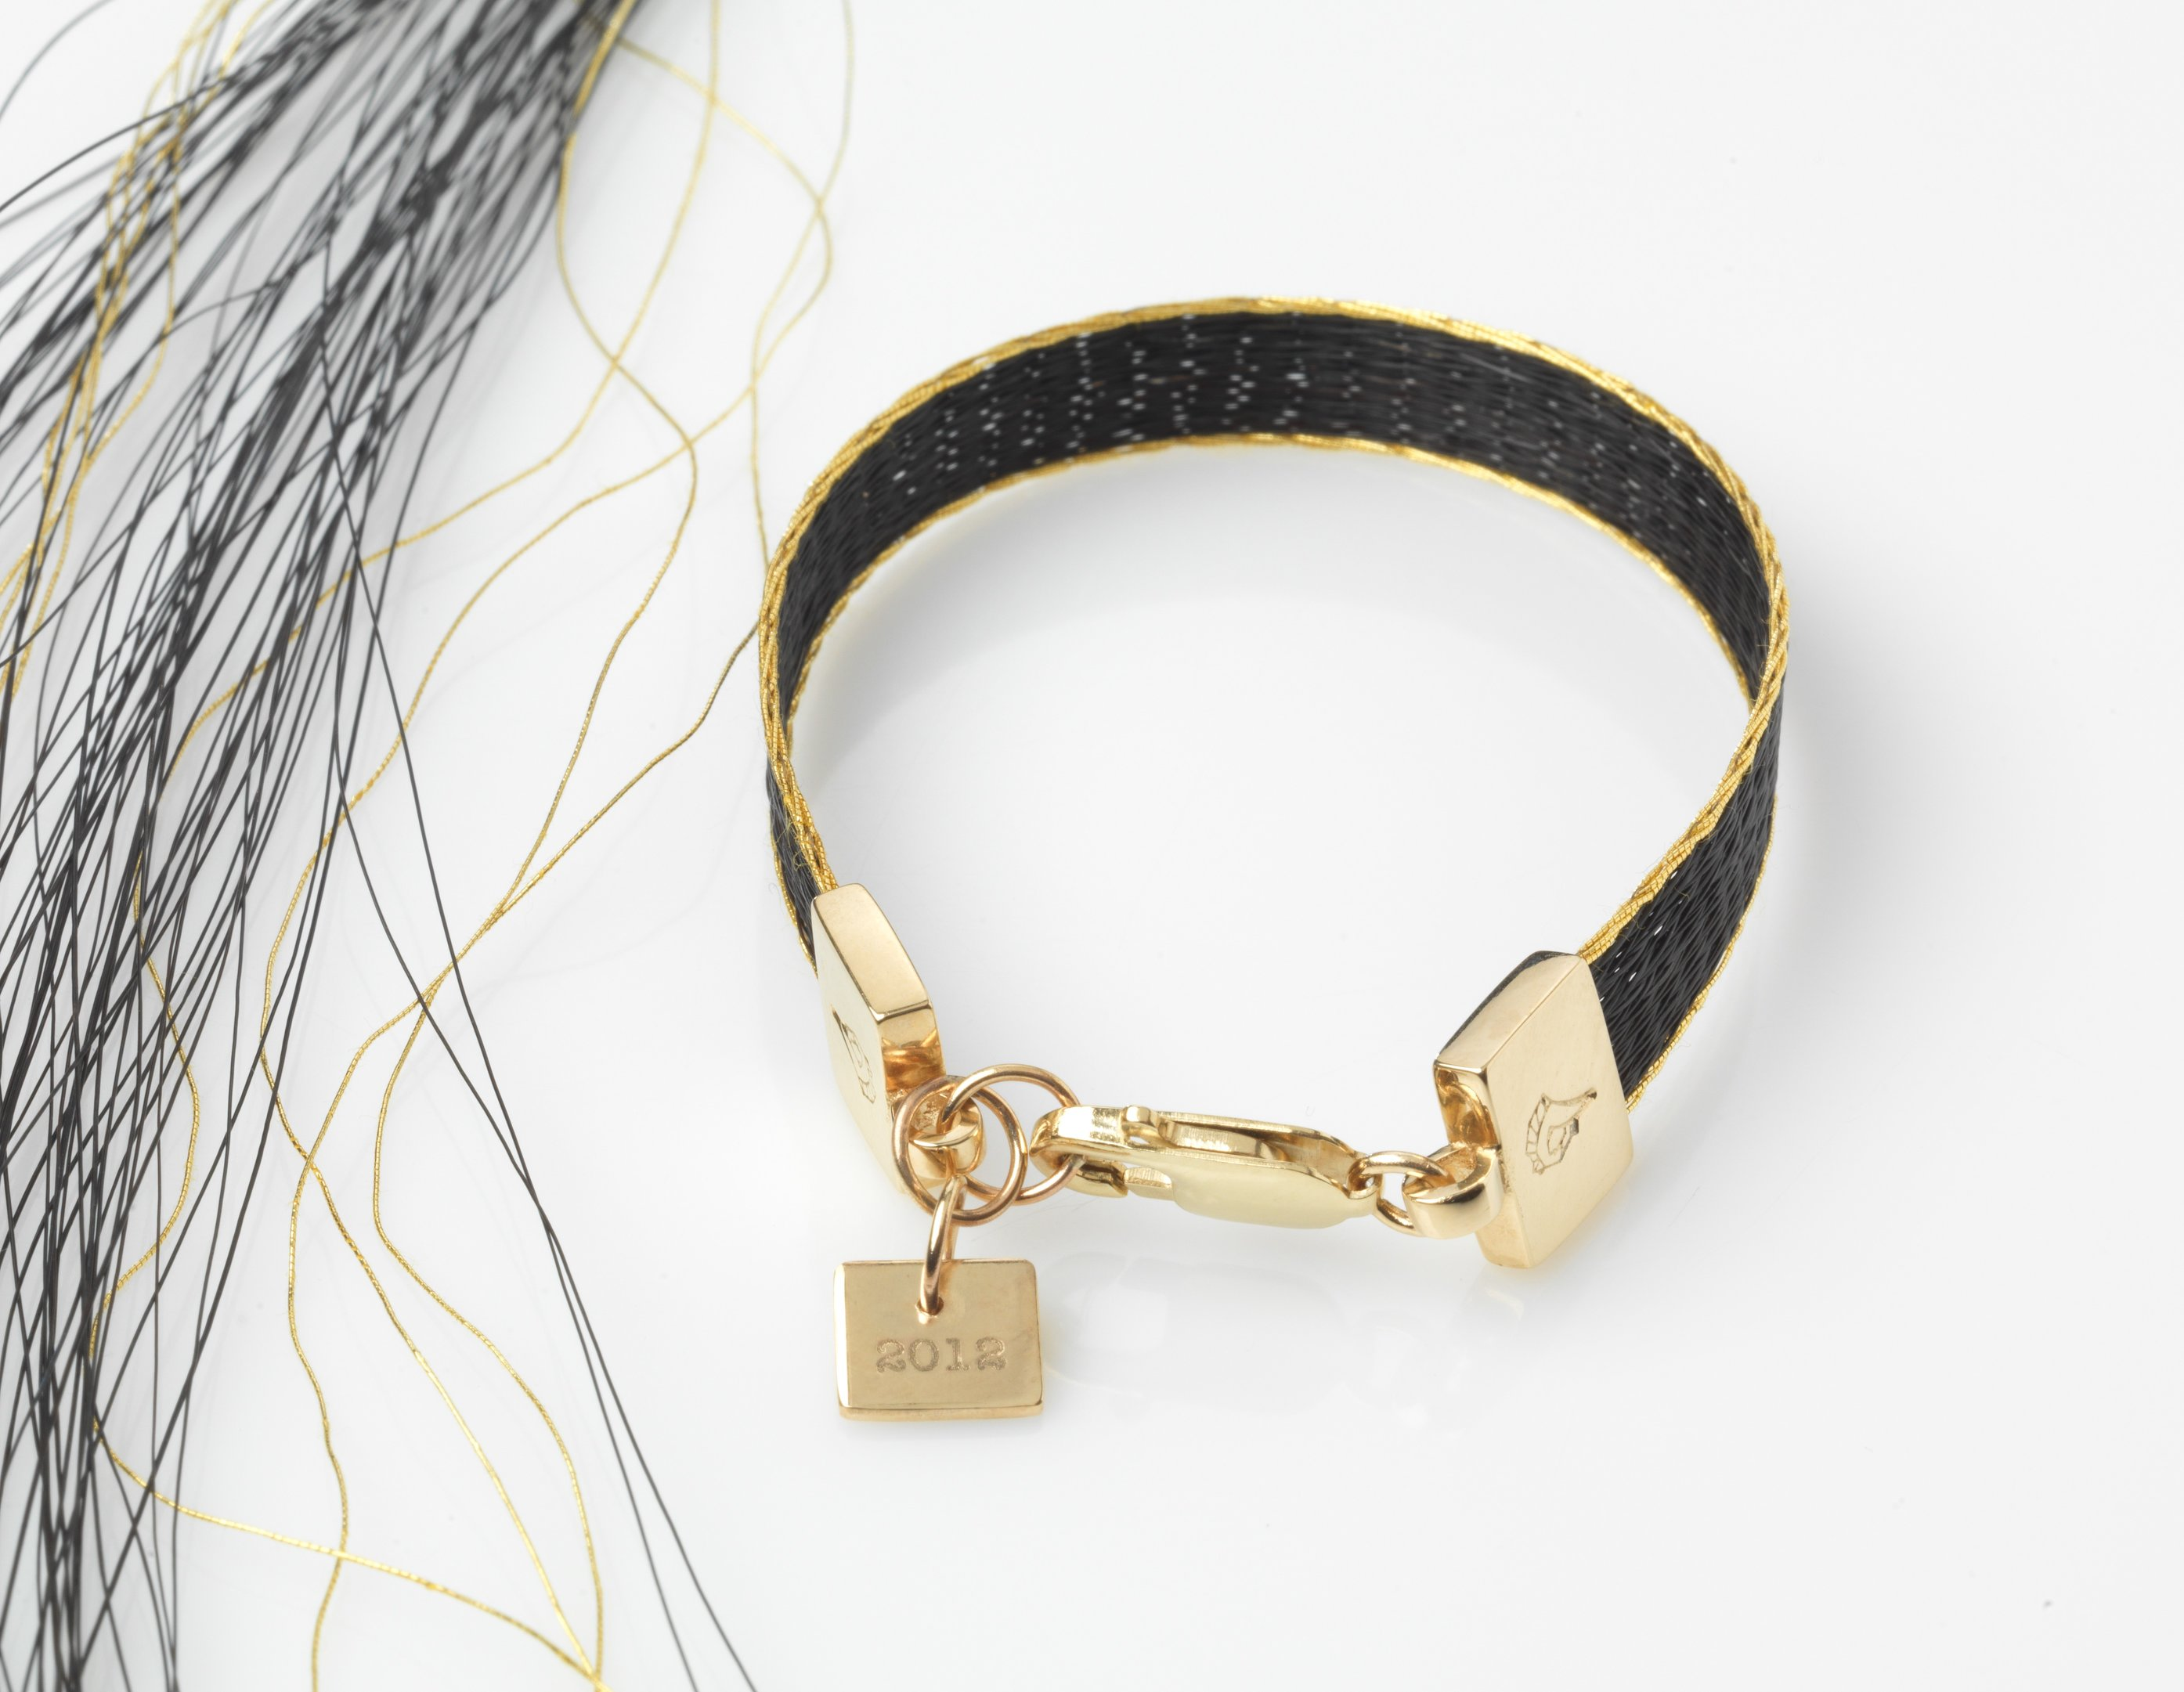 Yazmin Pinchen launches London 2012 bracelets for charity